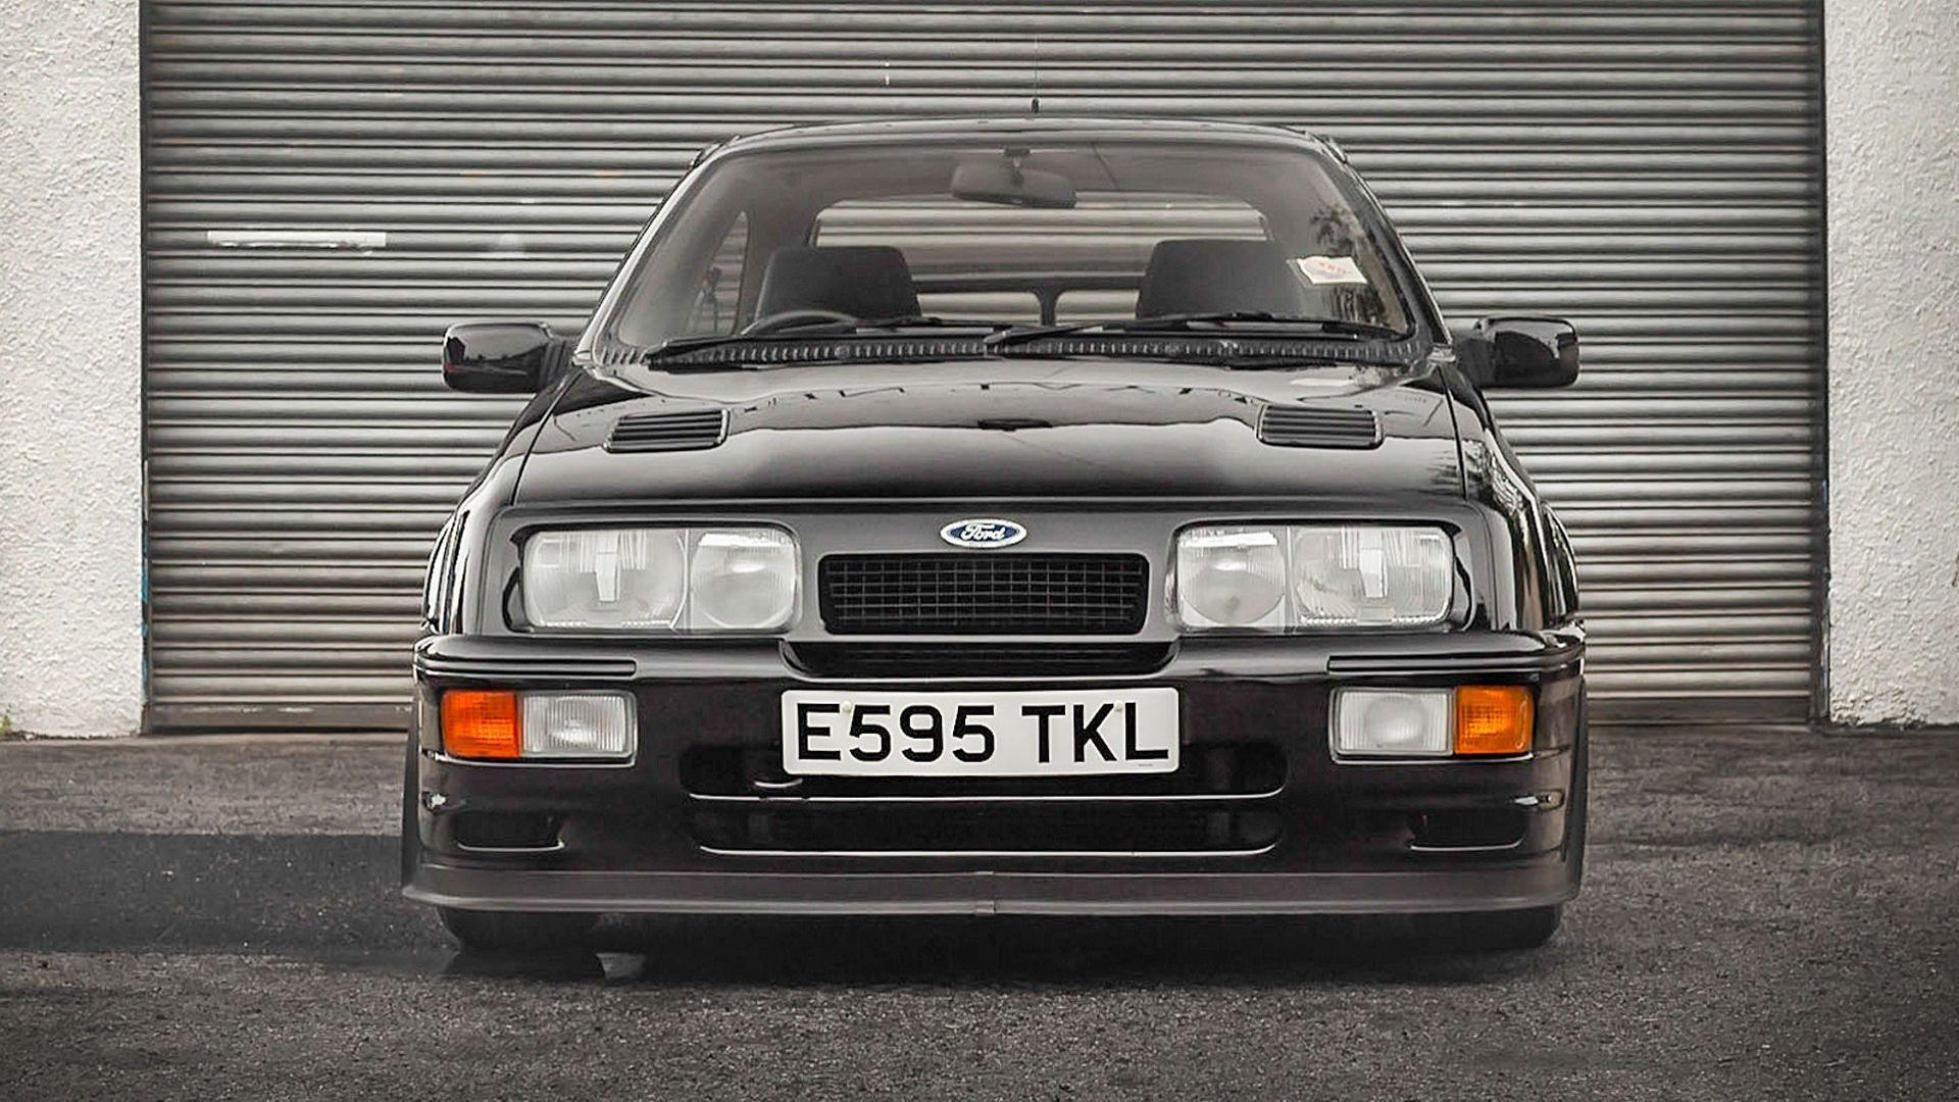 Cosworth The Aston Valkyrie Engine Could Have 1100bhp Ford Sierra Sierra Car Car Ford